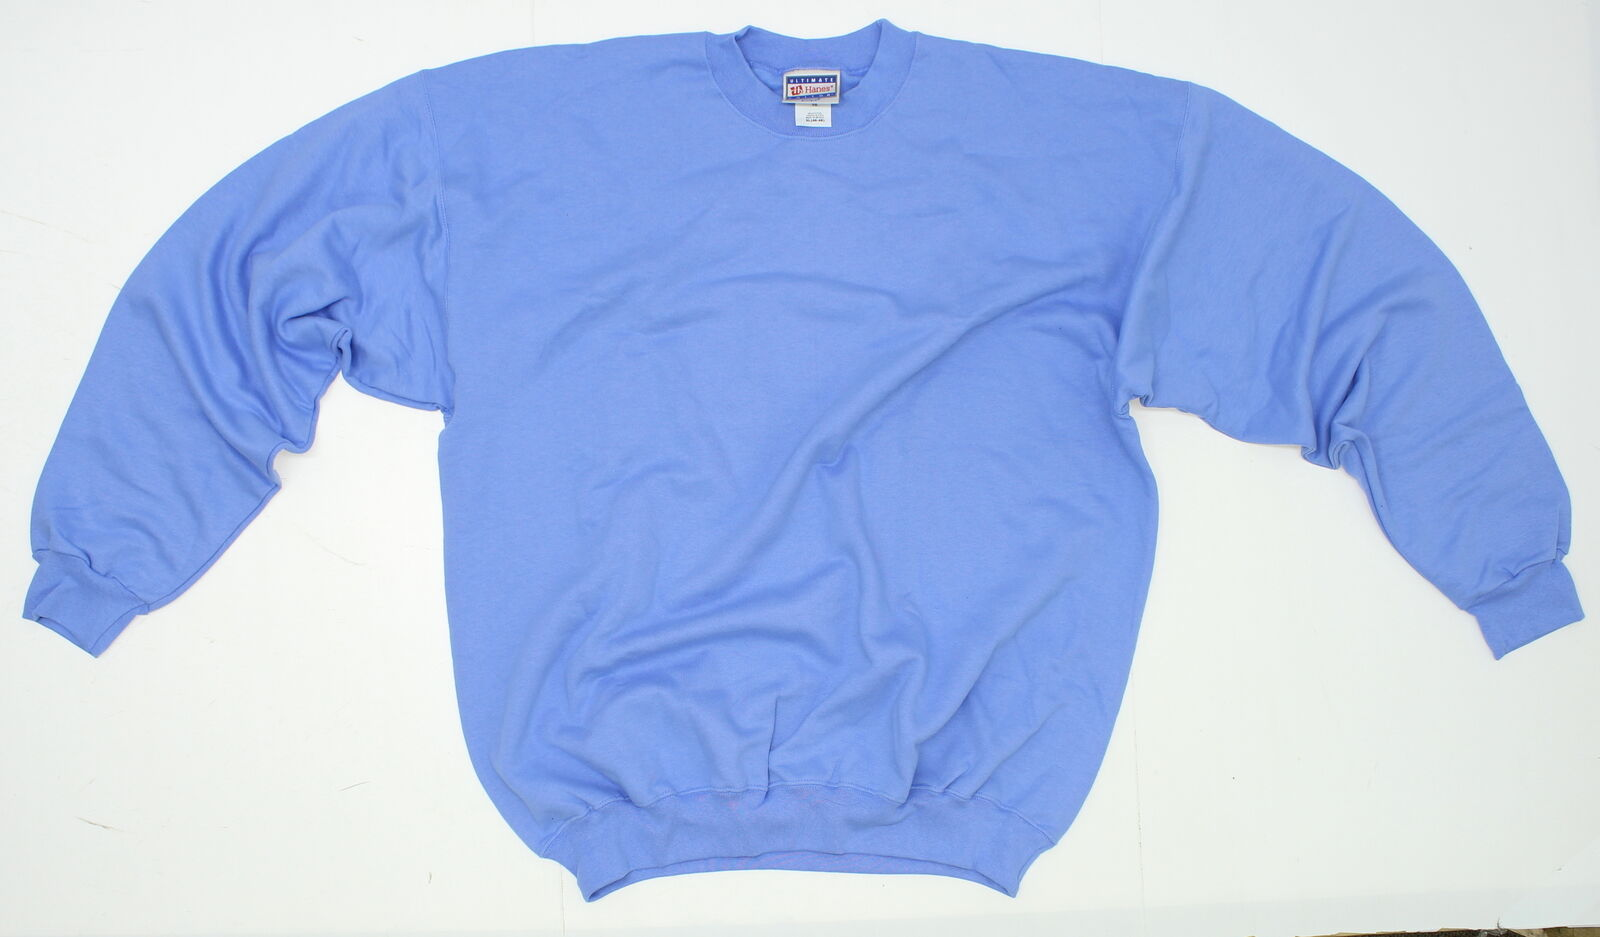 Hanes Ultimate Cotton Crewneck Adult Sweatshirt Size M,L,XL